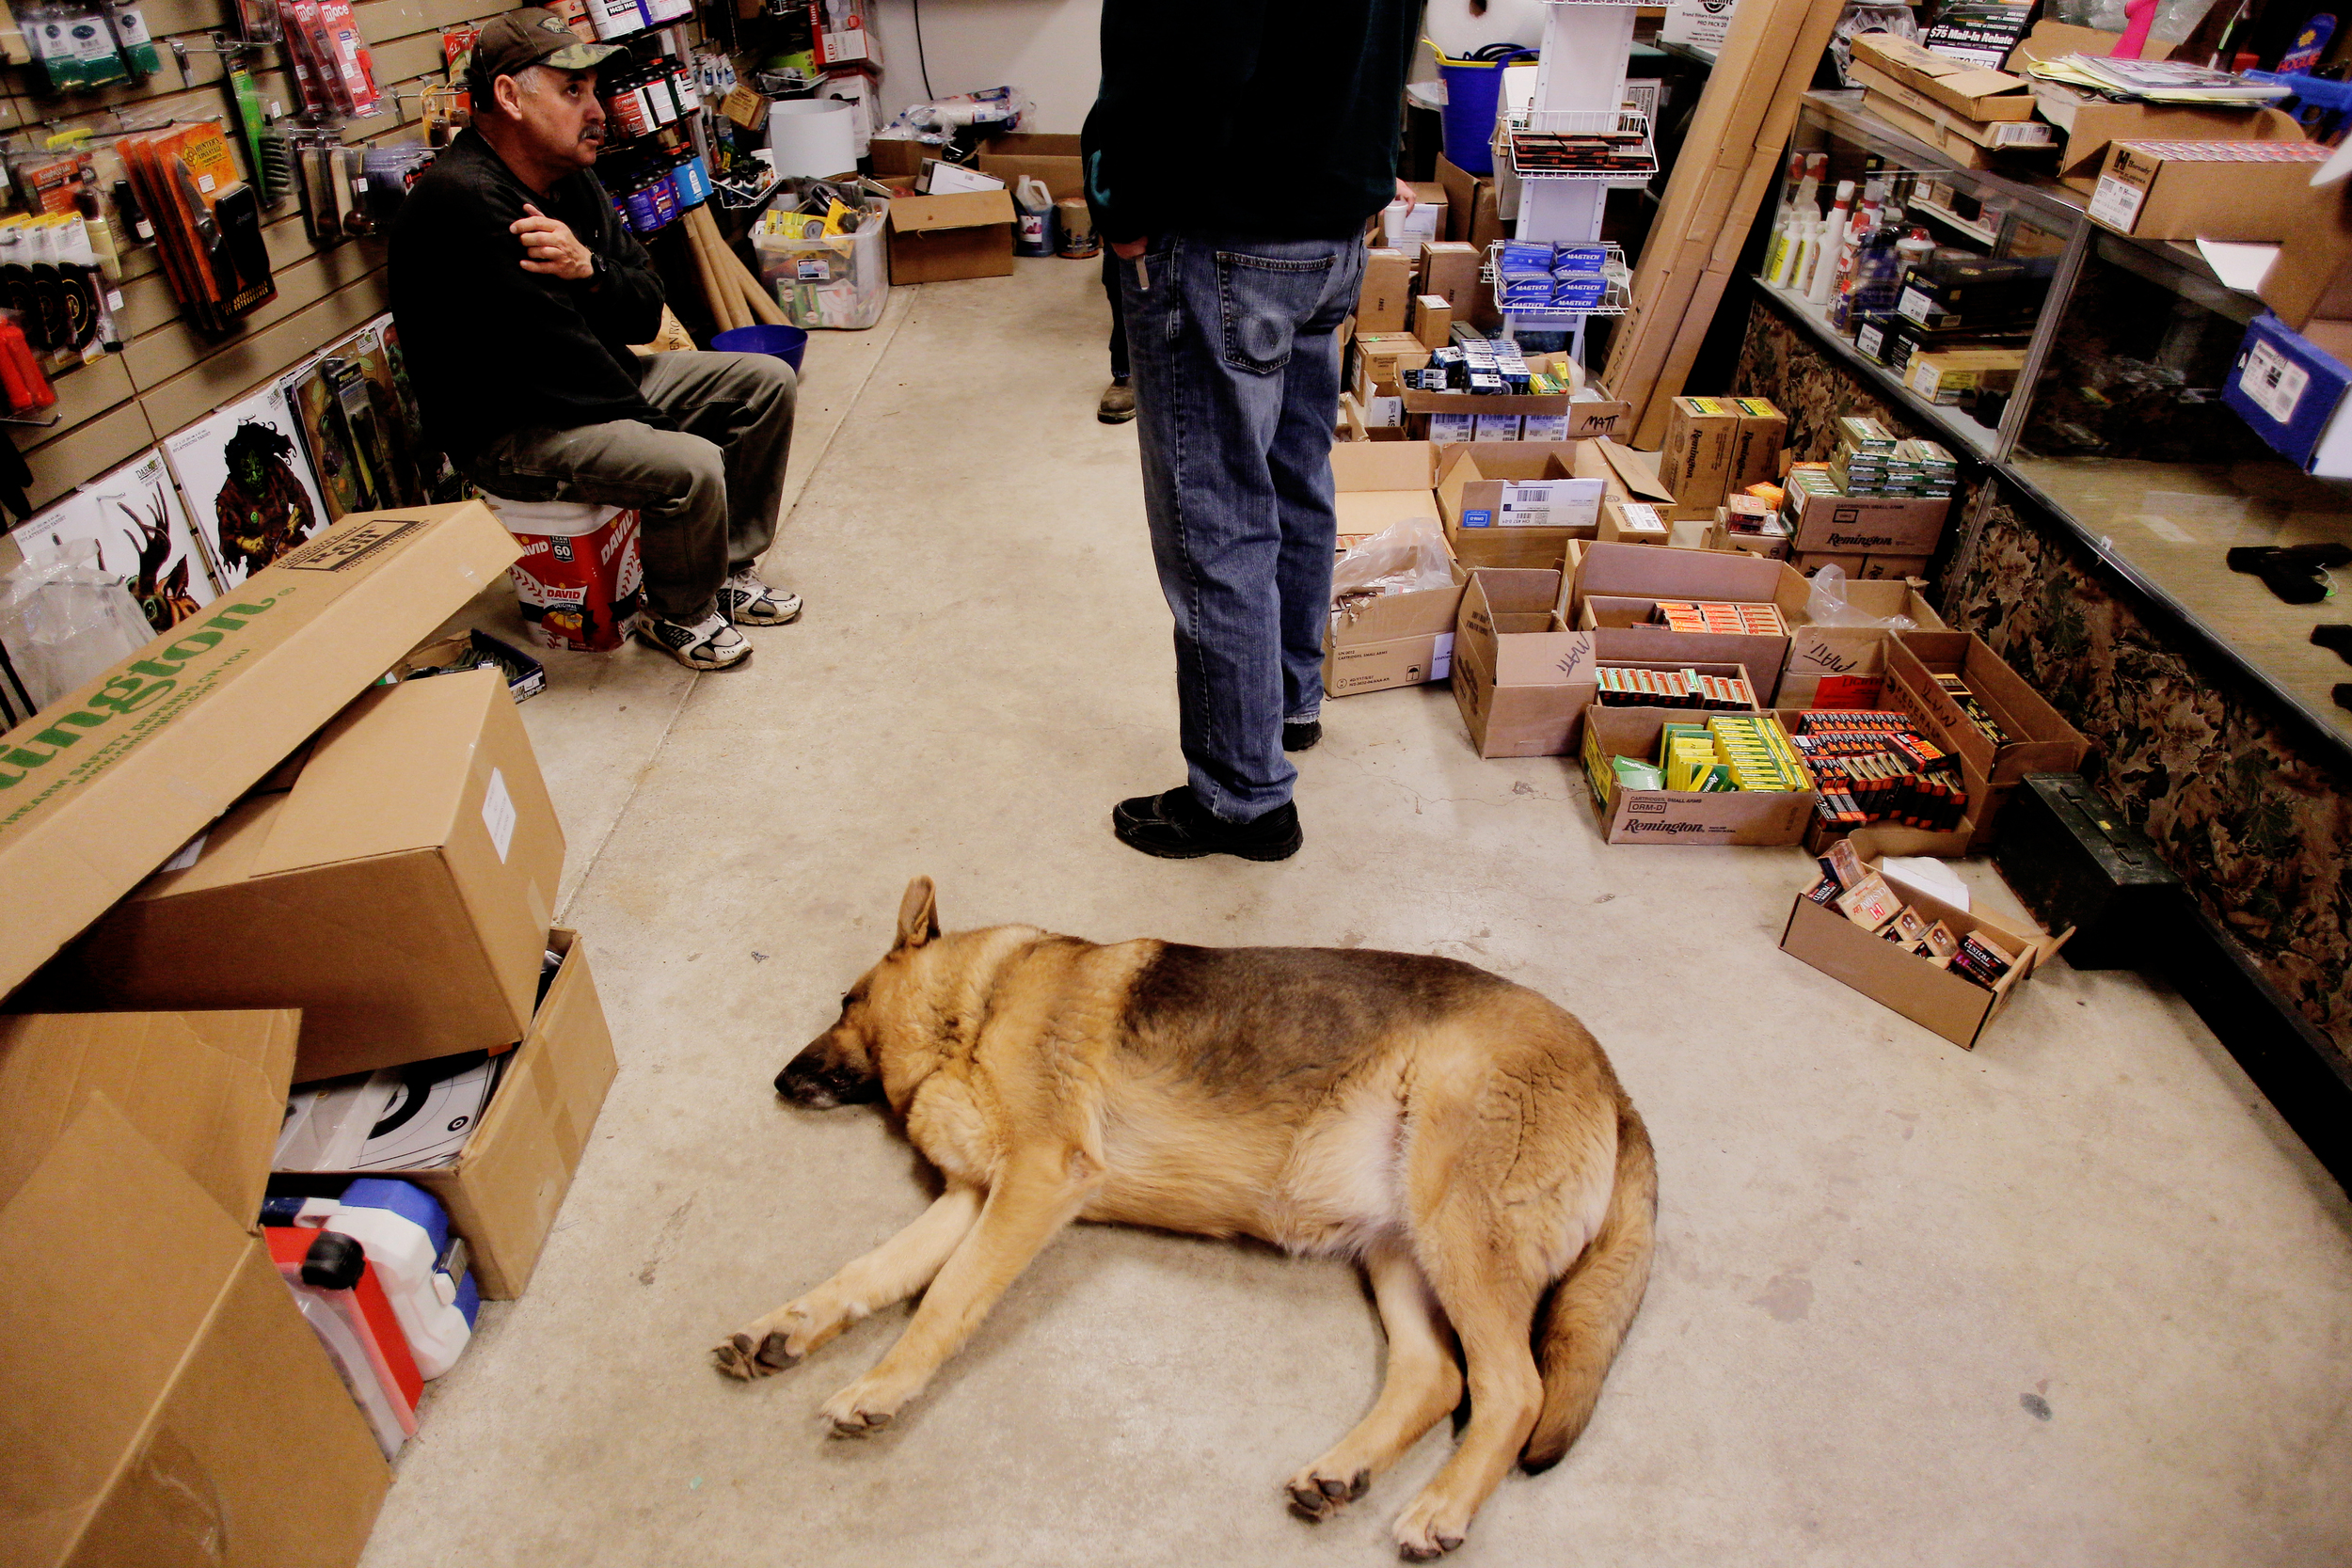 The store's German shepherd security dog, Piper, takes a nap on the floor.